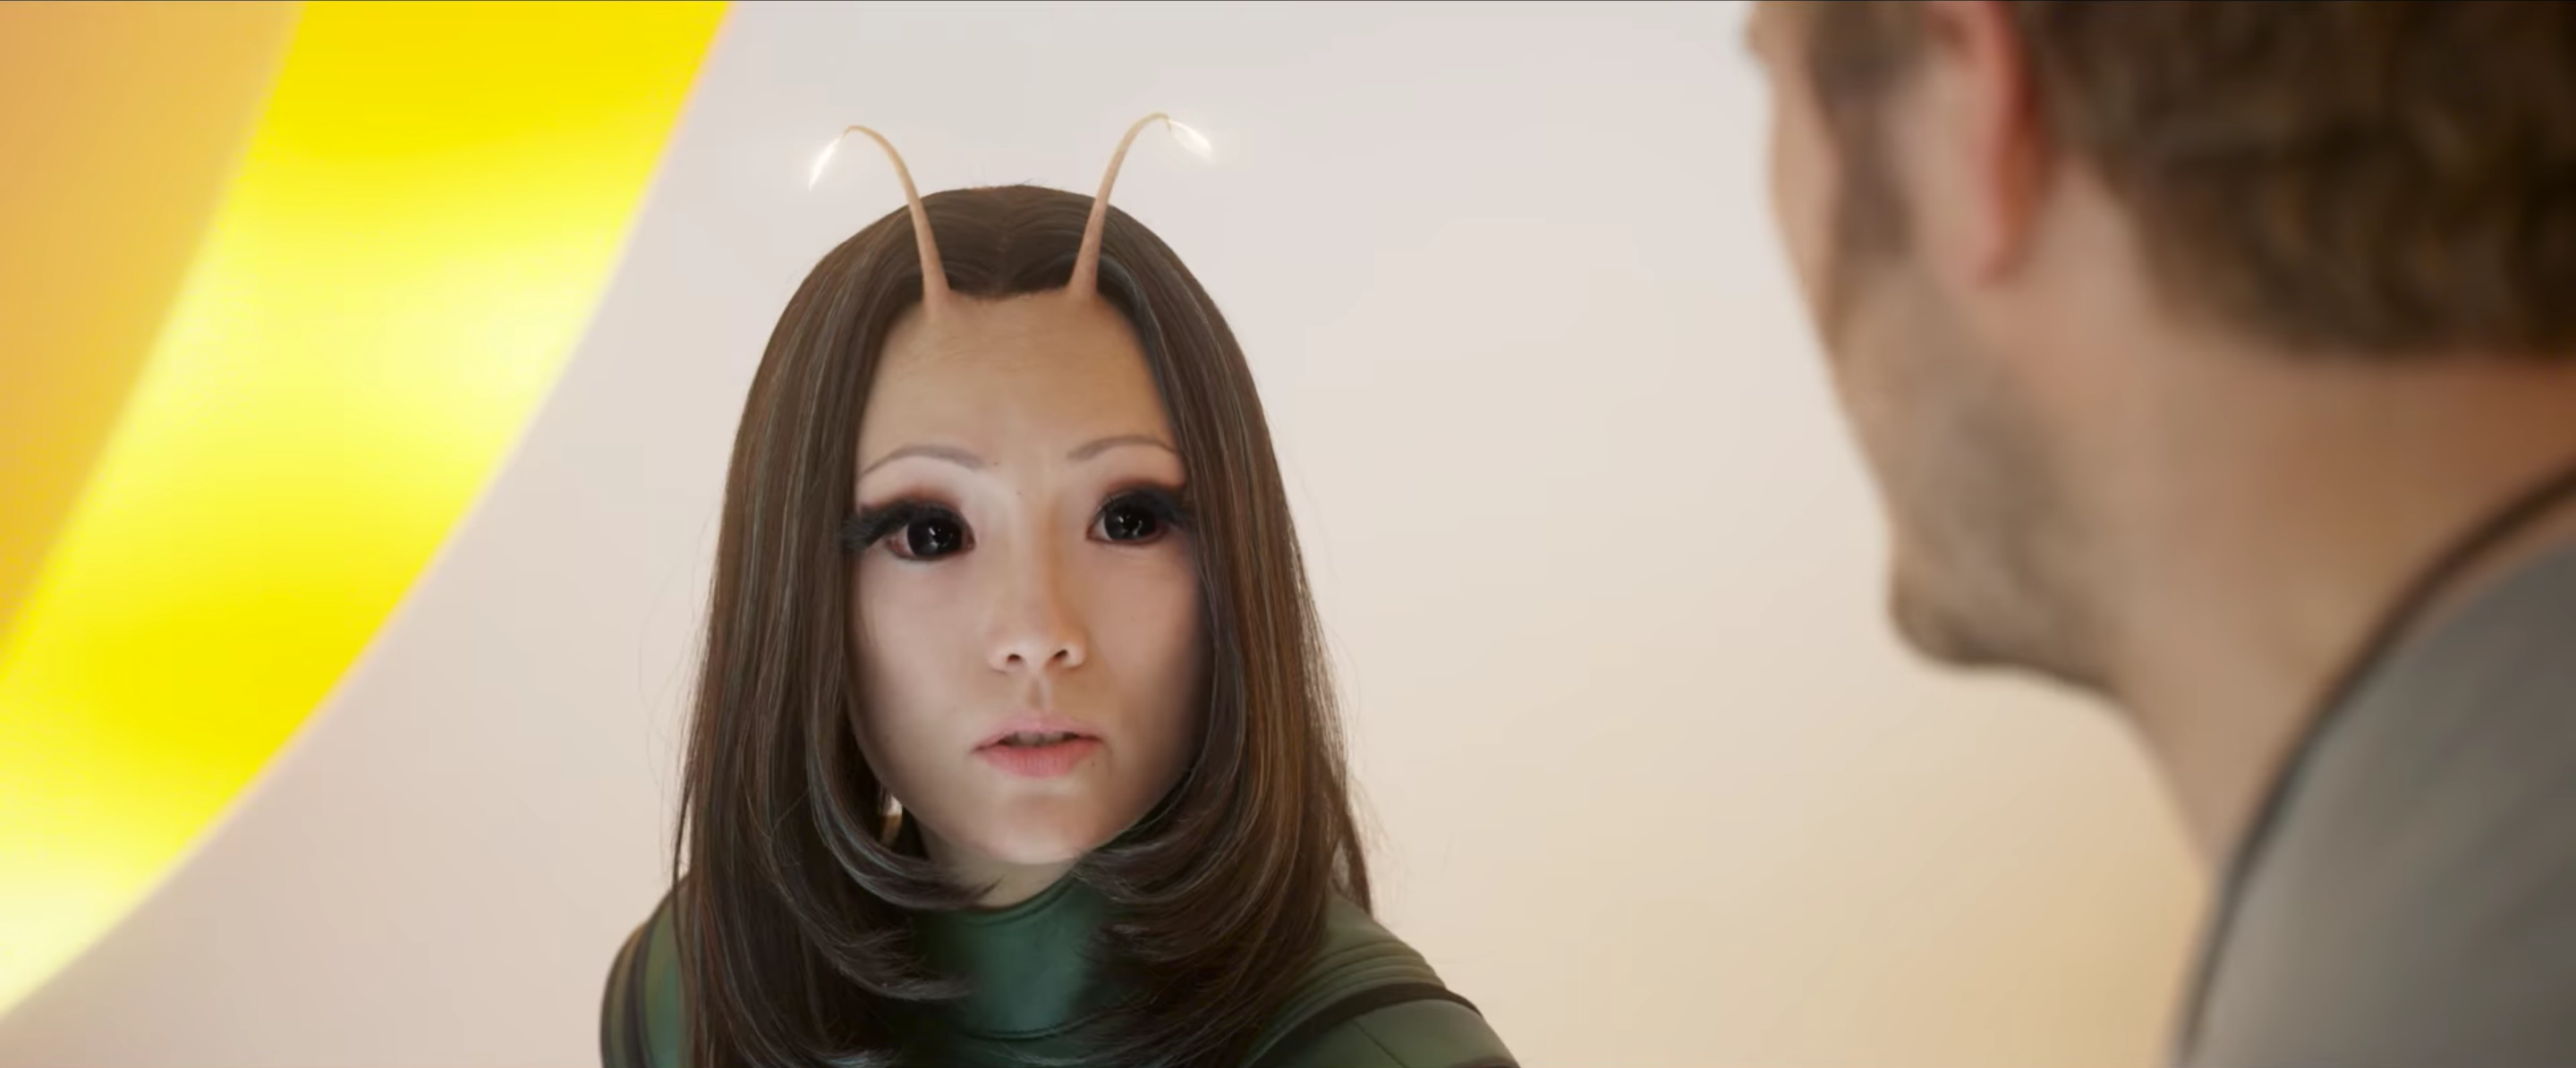 Guardians of the Galaxy Vol. 2 got Mantis all wrong, says character creator